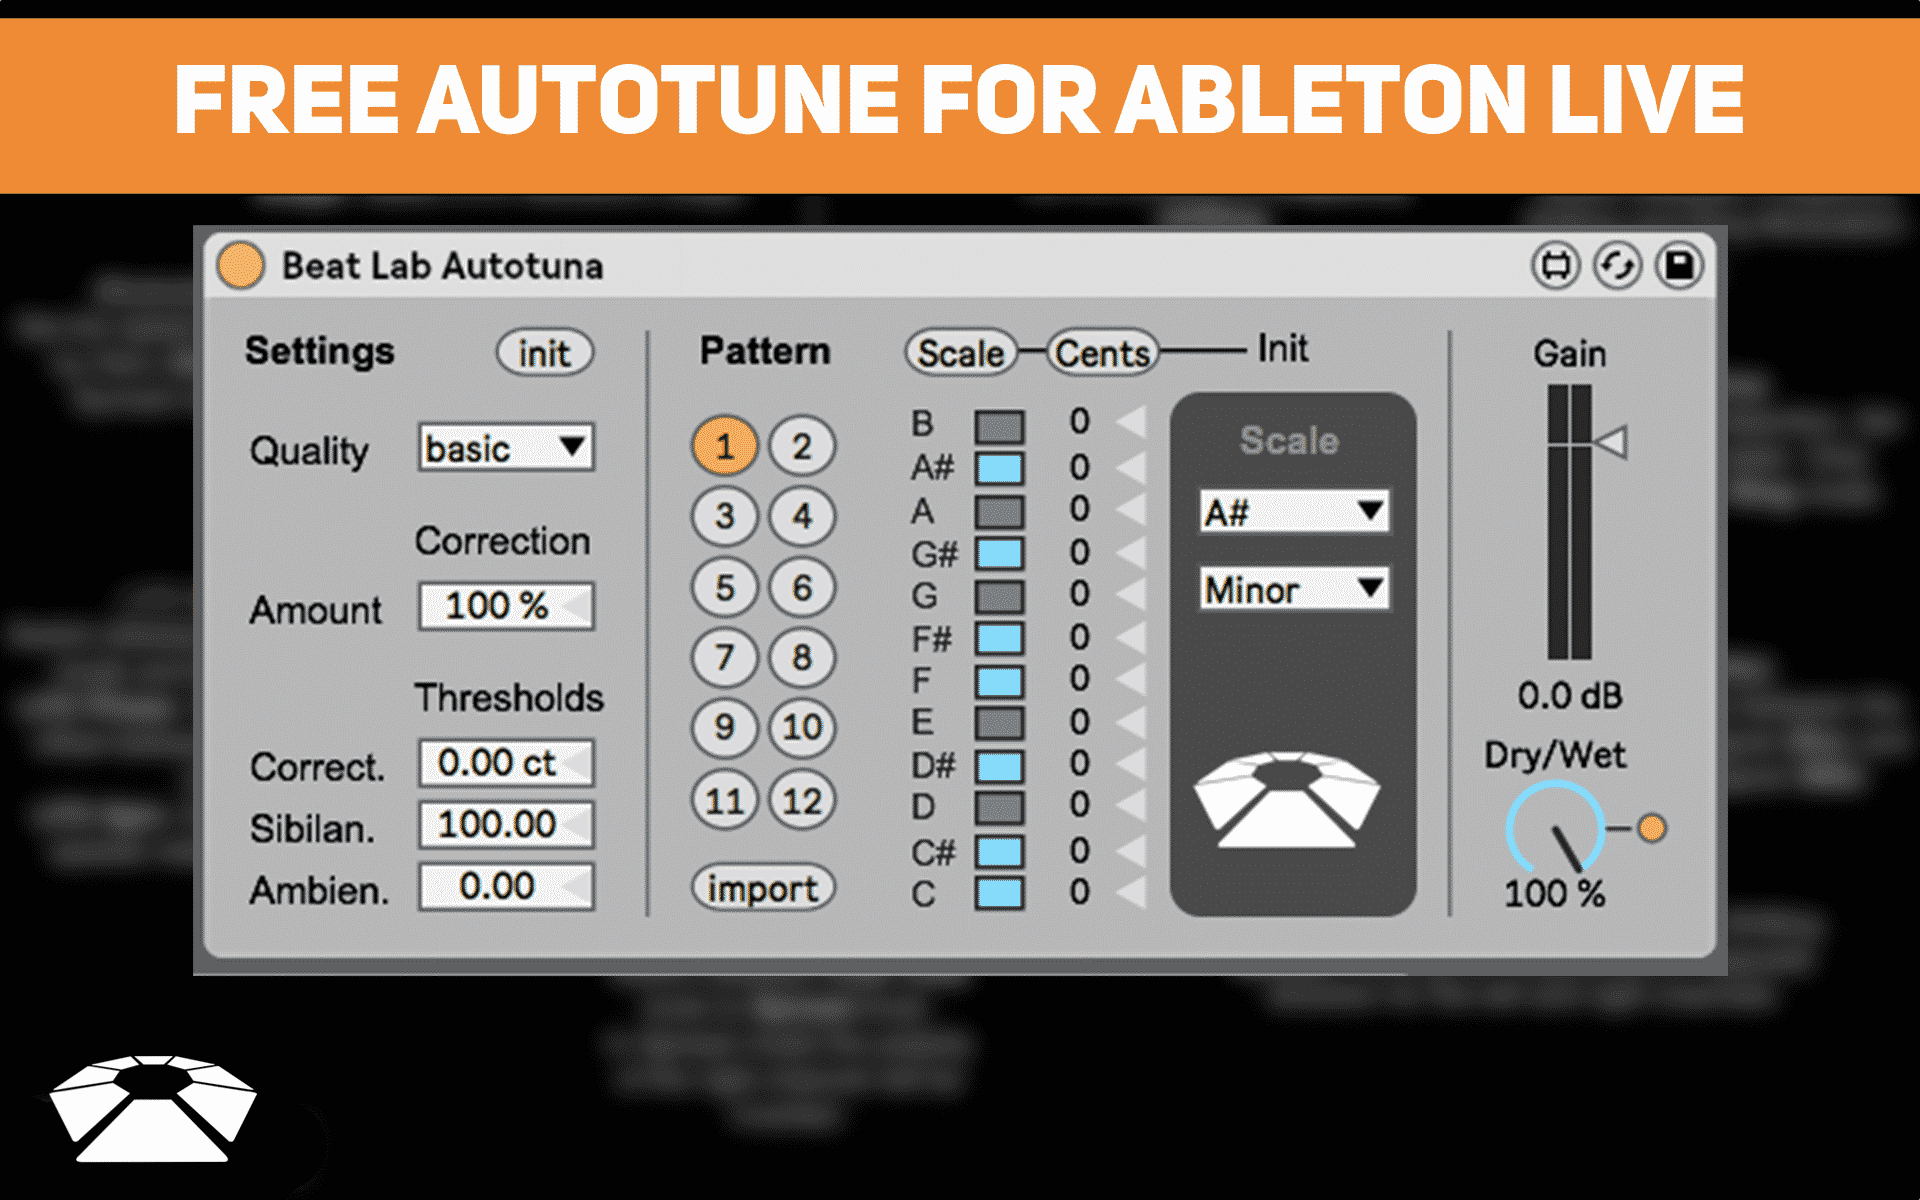 Autotune for ableton live free download beat lab thecheapjerseys Image collections